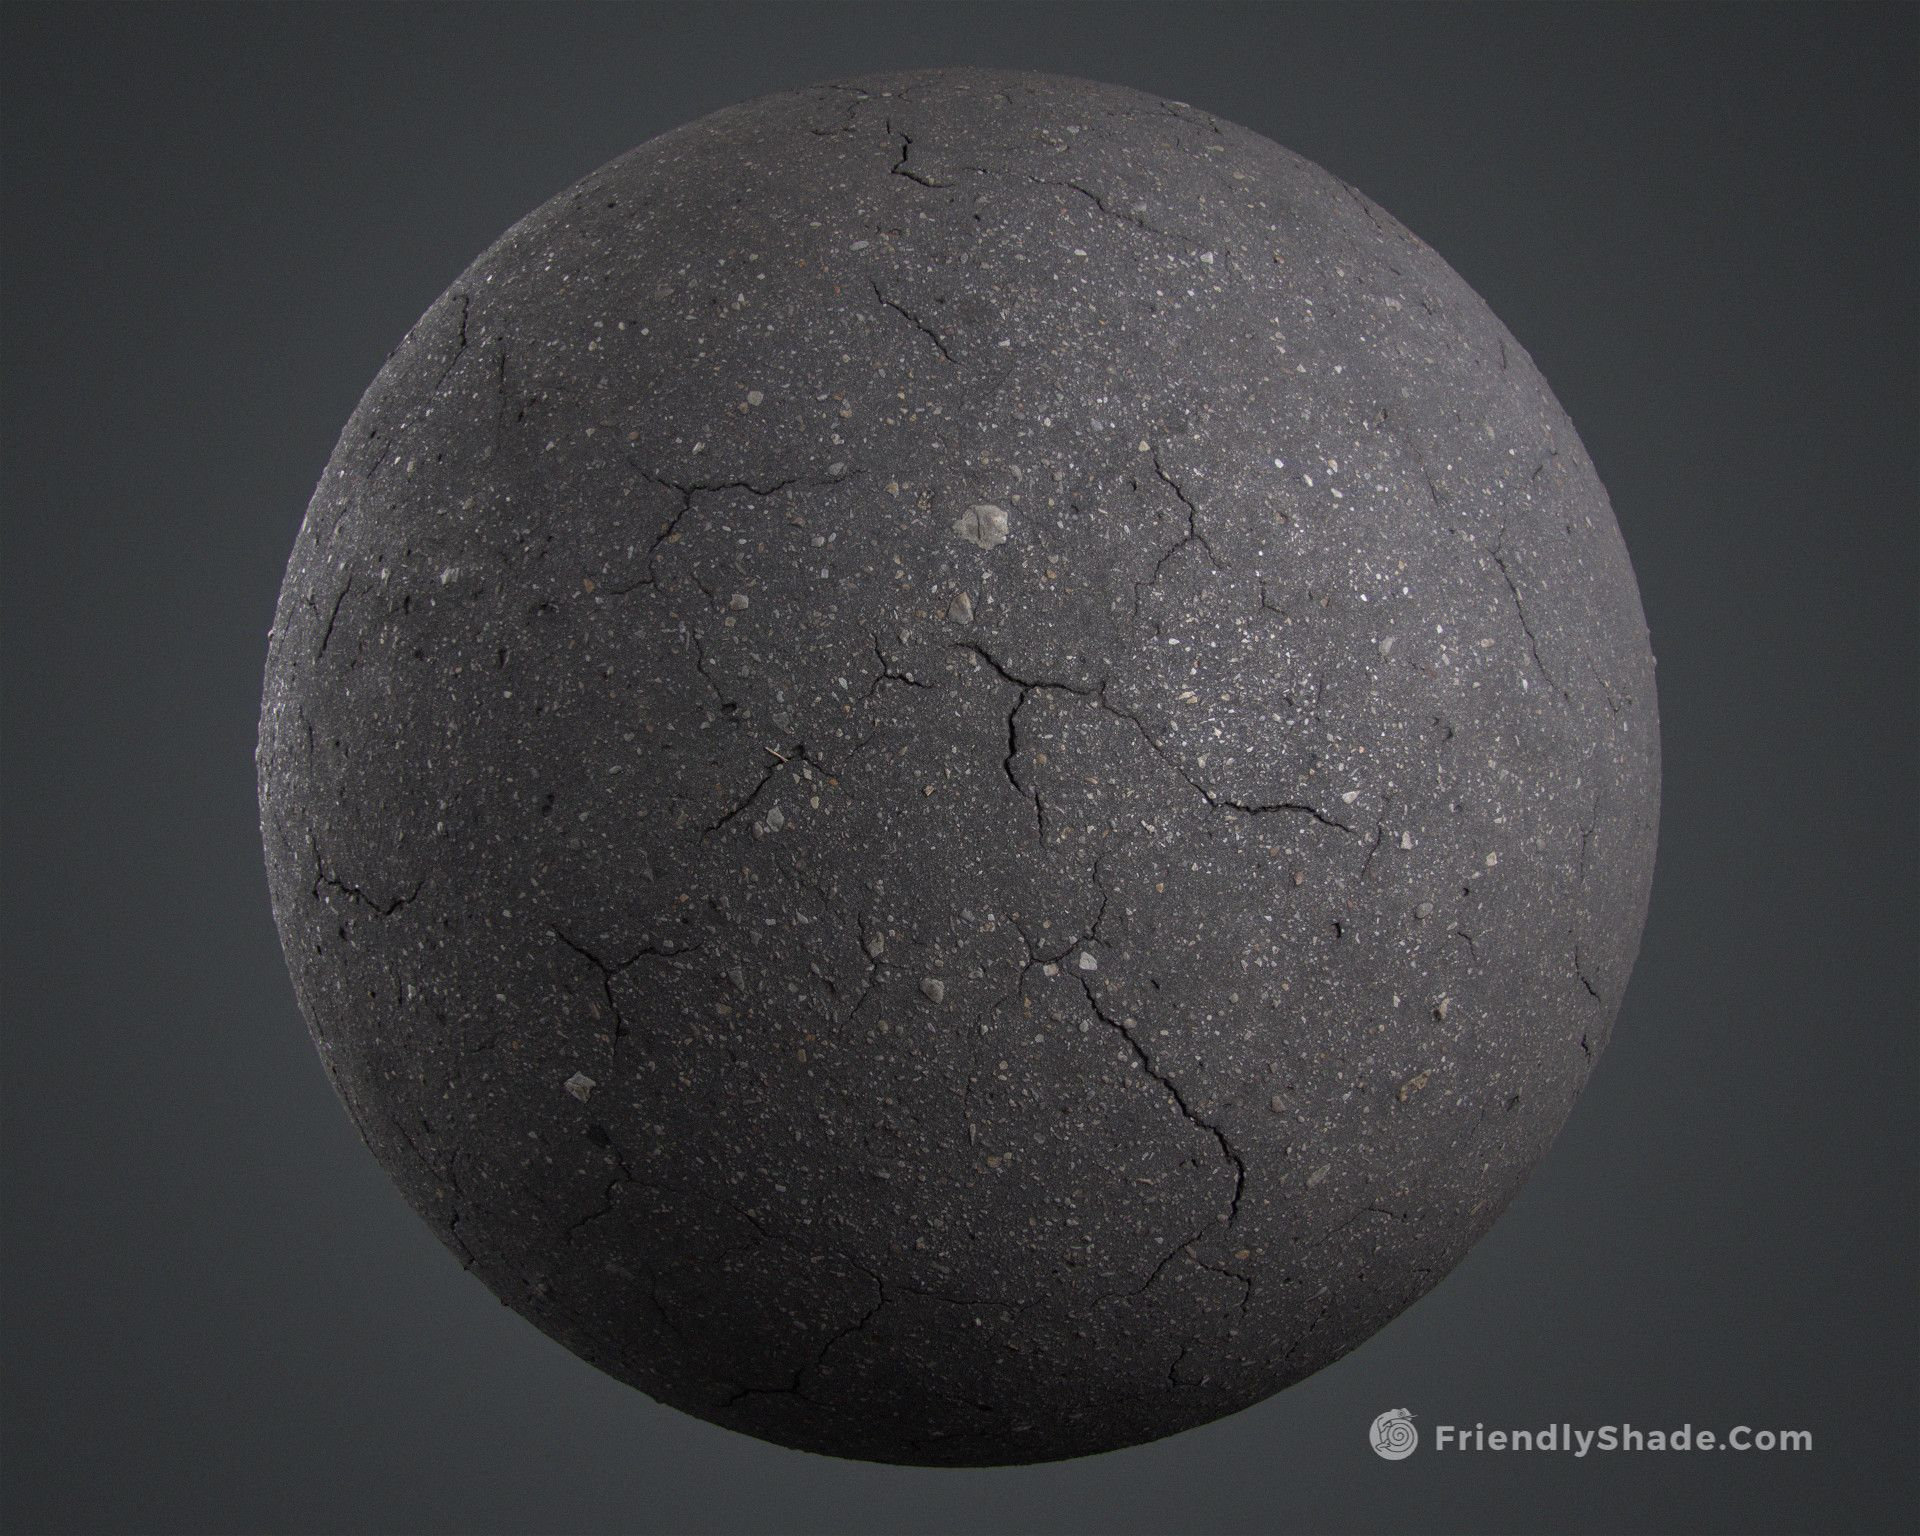 Artstation Friendly Shade Cracked Asphalt Preview Sebastian Zapata Asphalt Cinema 4d Materials Zbrush